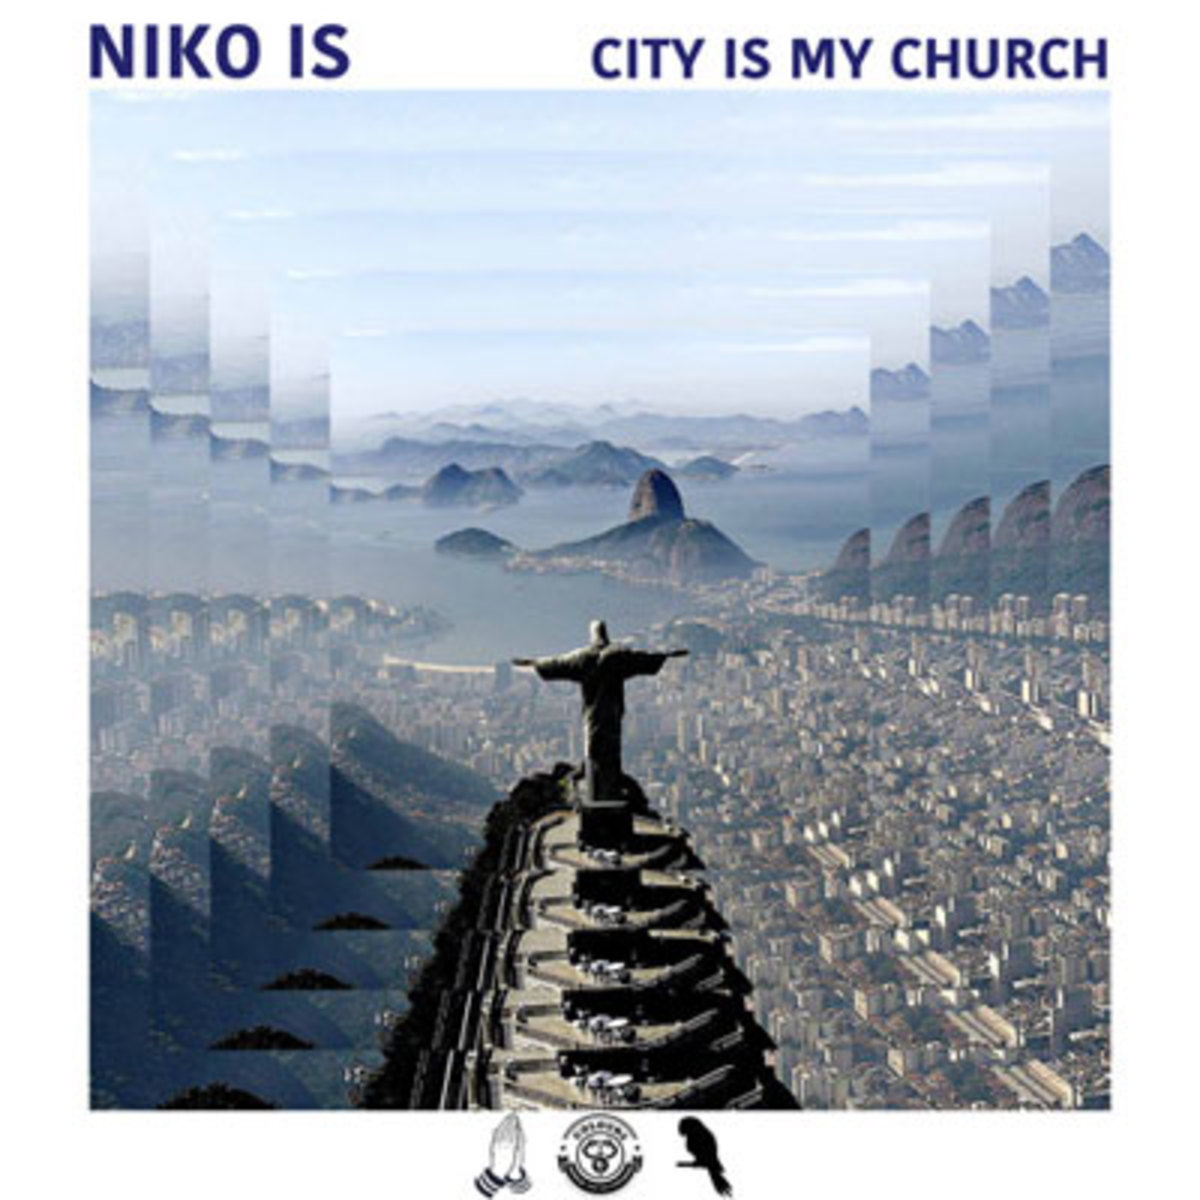 niko-is-city-is-my-church.jpg